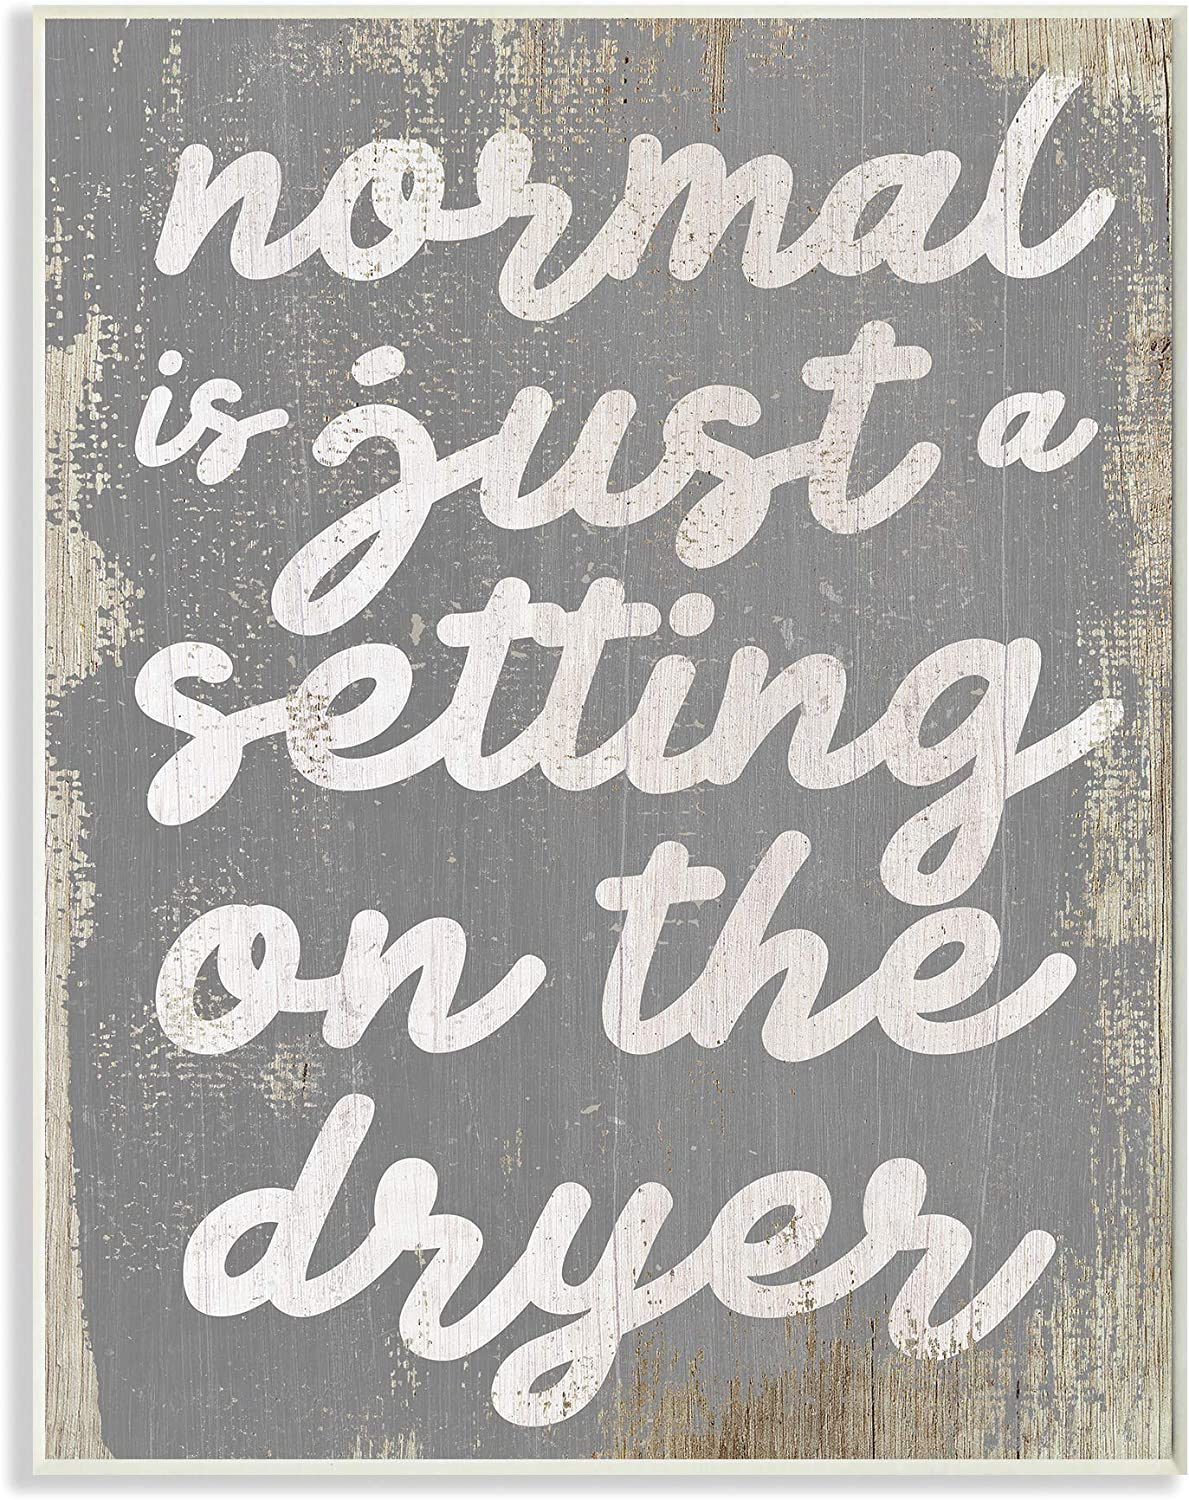 Stupell Industries Normal Setting Funny Family Laundry Bathroom Word, Design by Artist Daphne Polselli Art, 13 x 0.5 x 19, Wall Plaque